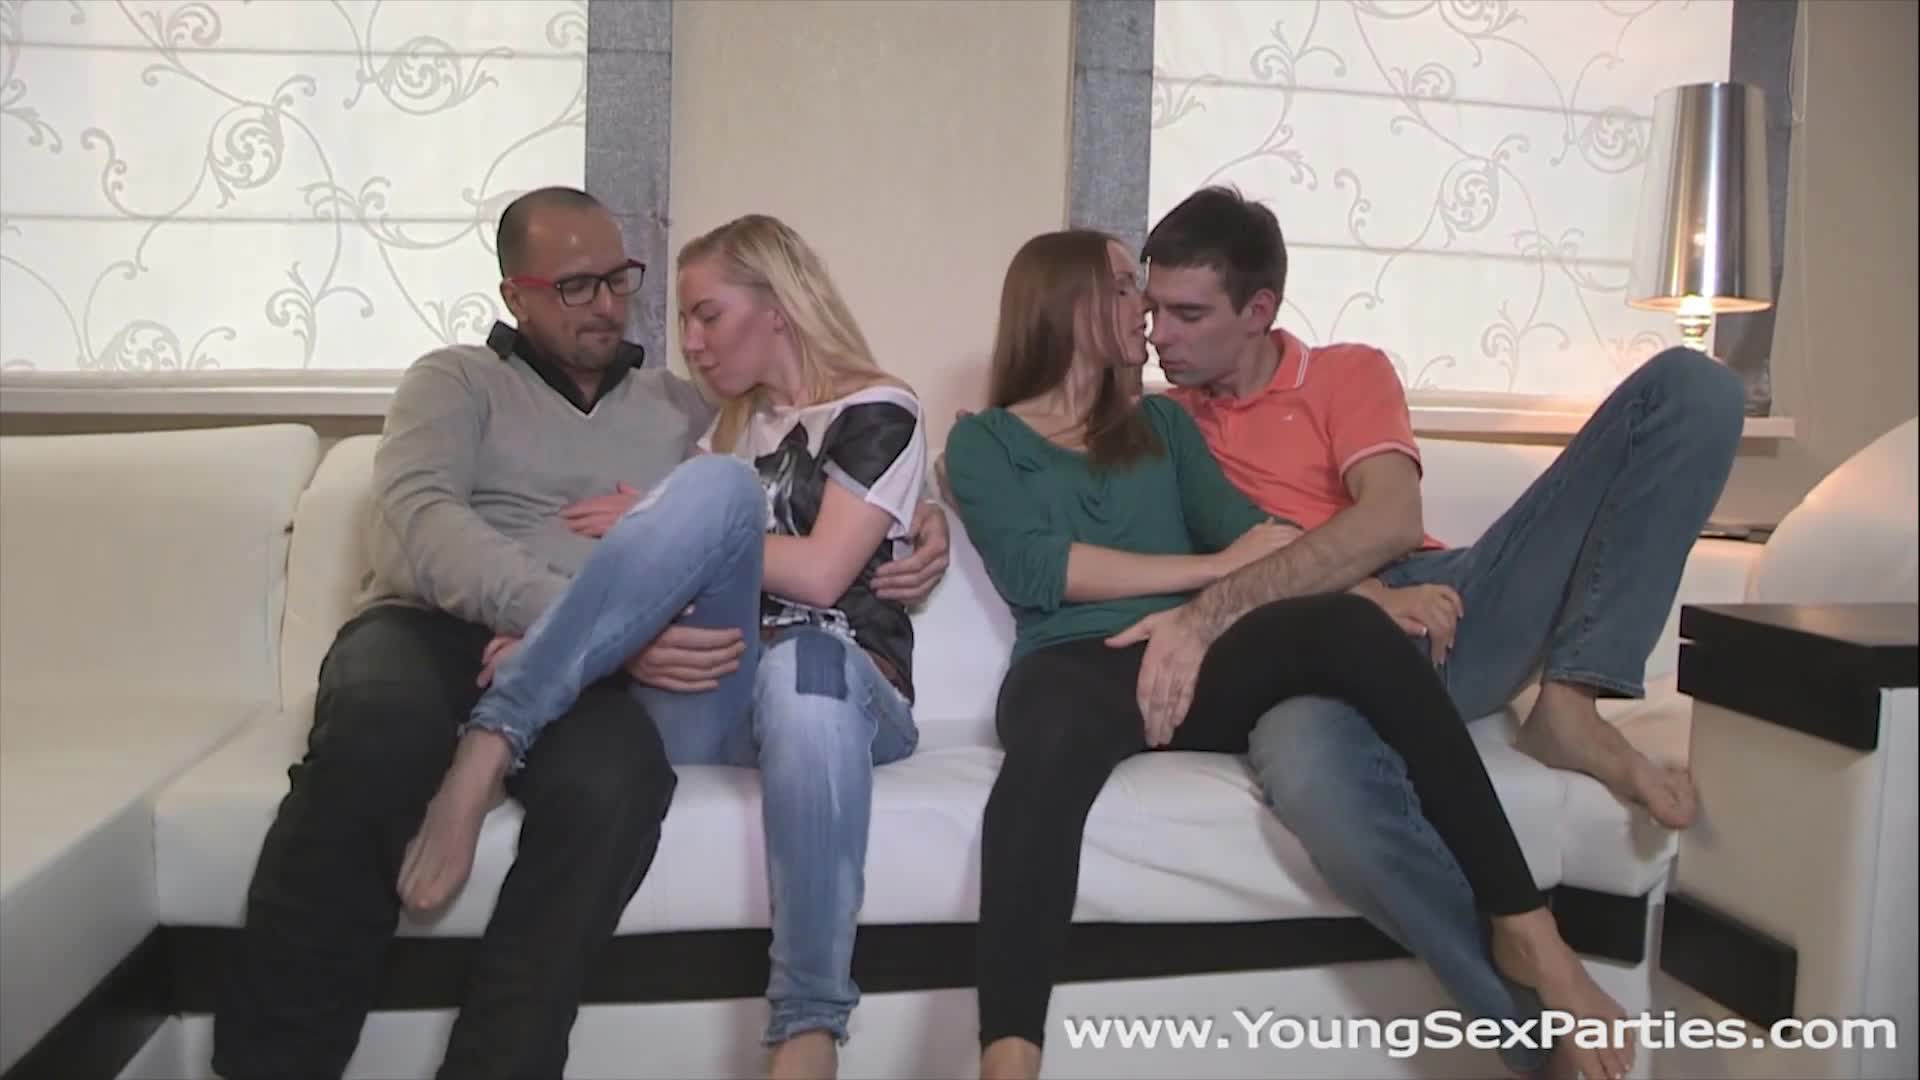 Young Sex Parties Angie Koks Sabrina Moore Sharing the fruit of group sex